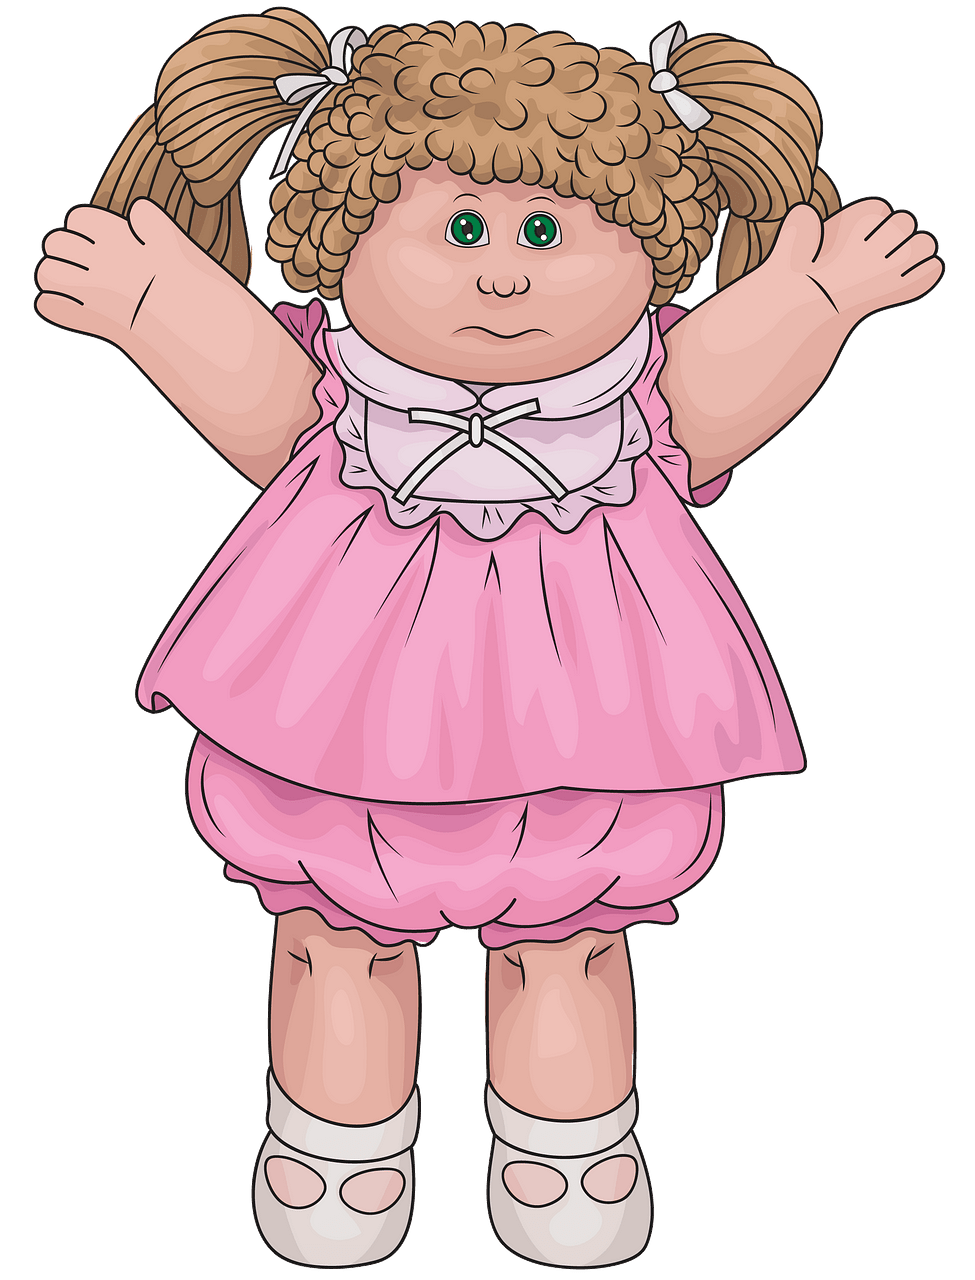 Cabbage Patch doll clipart. Free download..